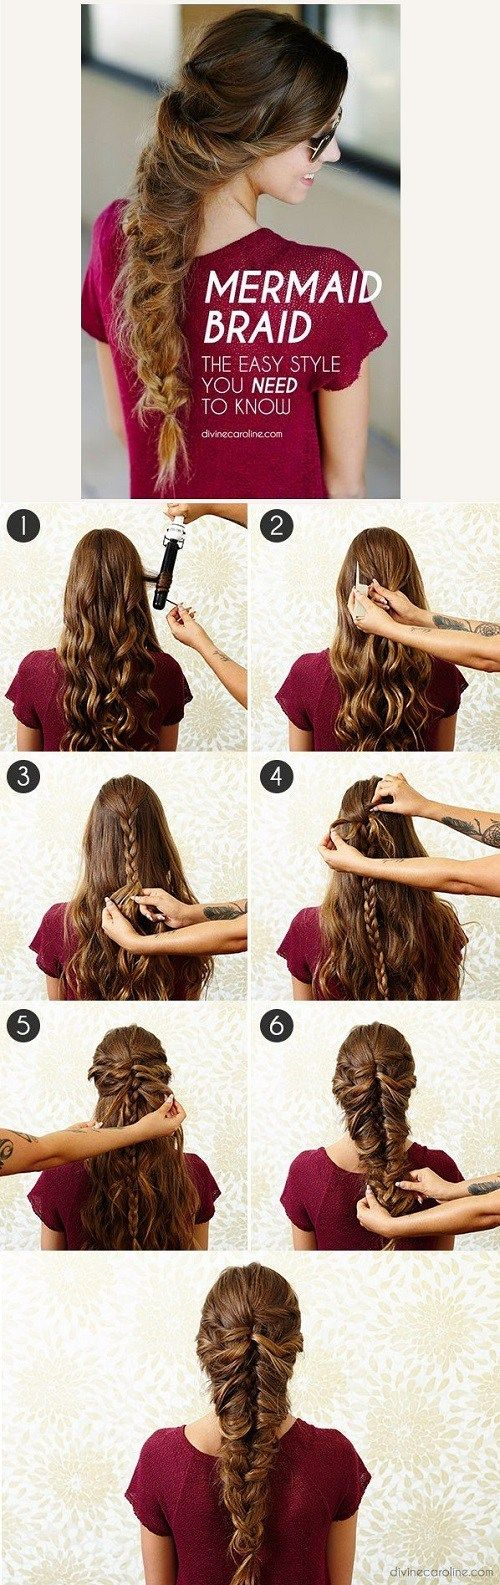 20 easy elegant step-by-step hair tutorials for long